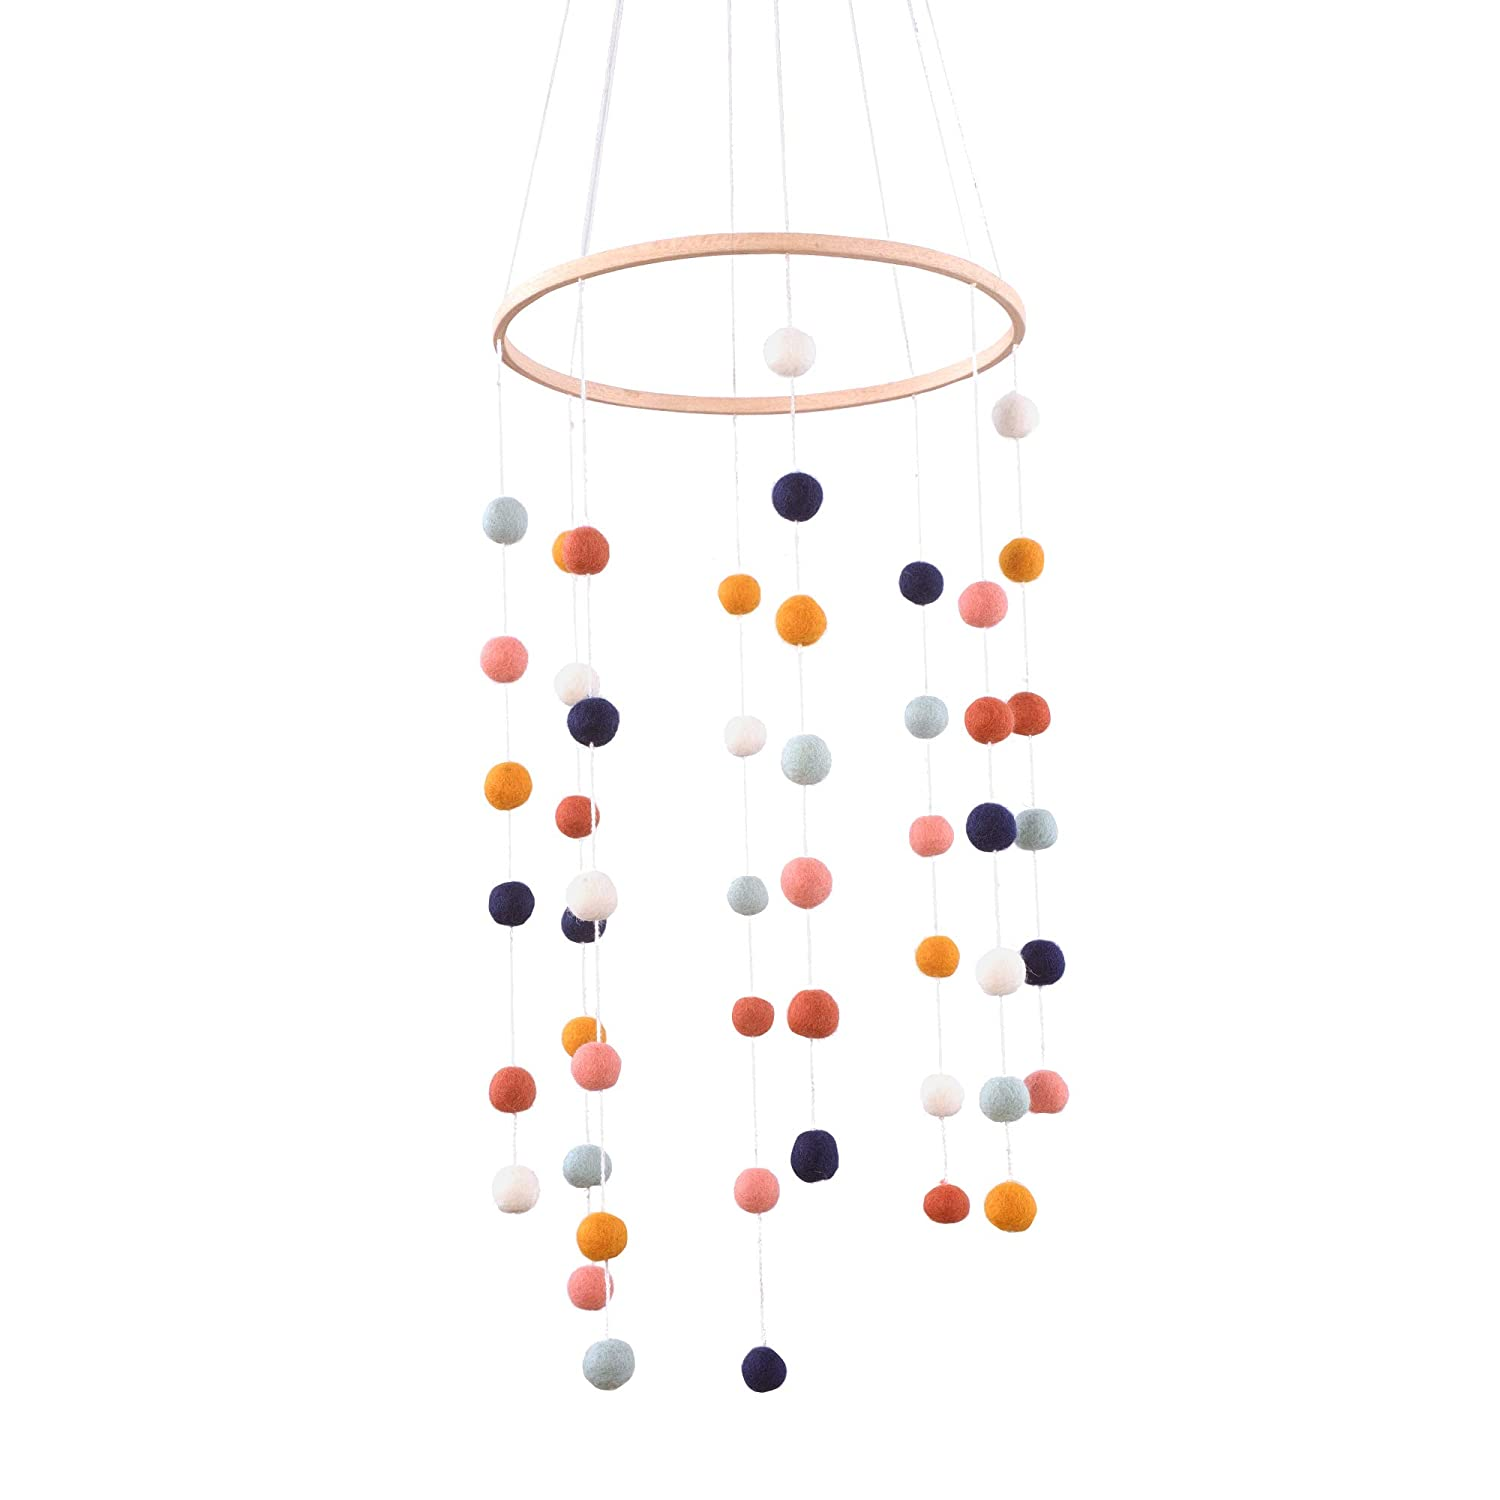 Glaciart One Felt Balls Baby Mobile - Colored Felt Hanging Decor & Toy Soother for Nursery, Crib, Bedroom - 100% Natural New Zealand Wool, Cotton Strings, Handmade in Nepal - Shower Gifts for Infants